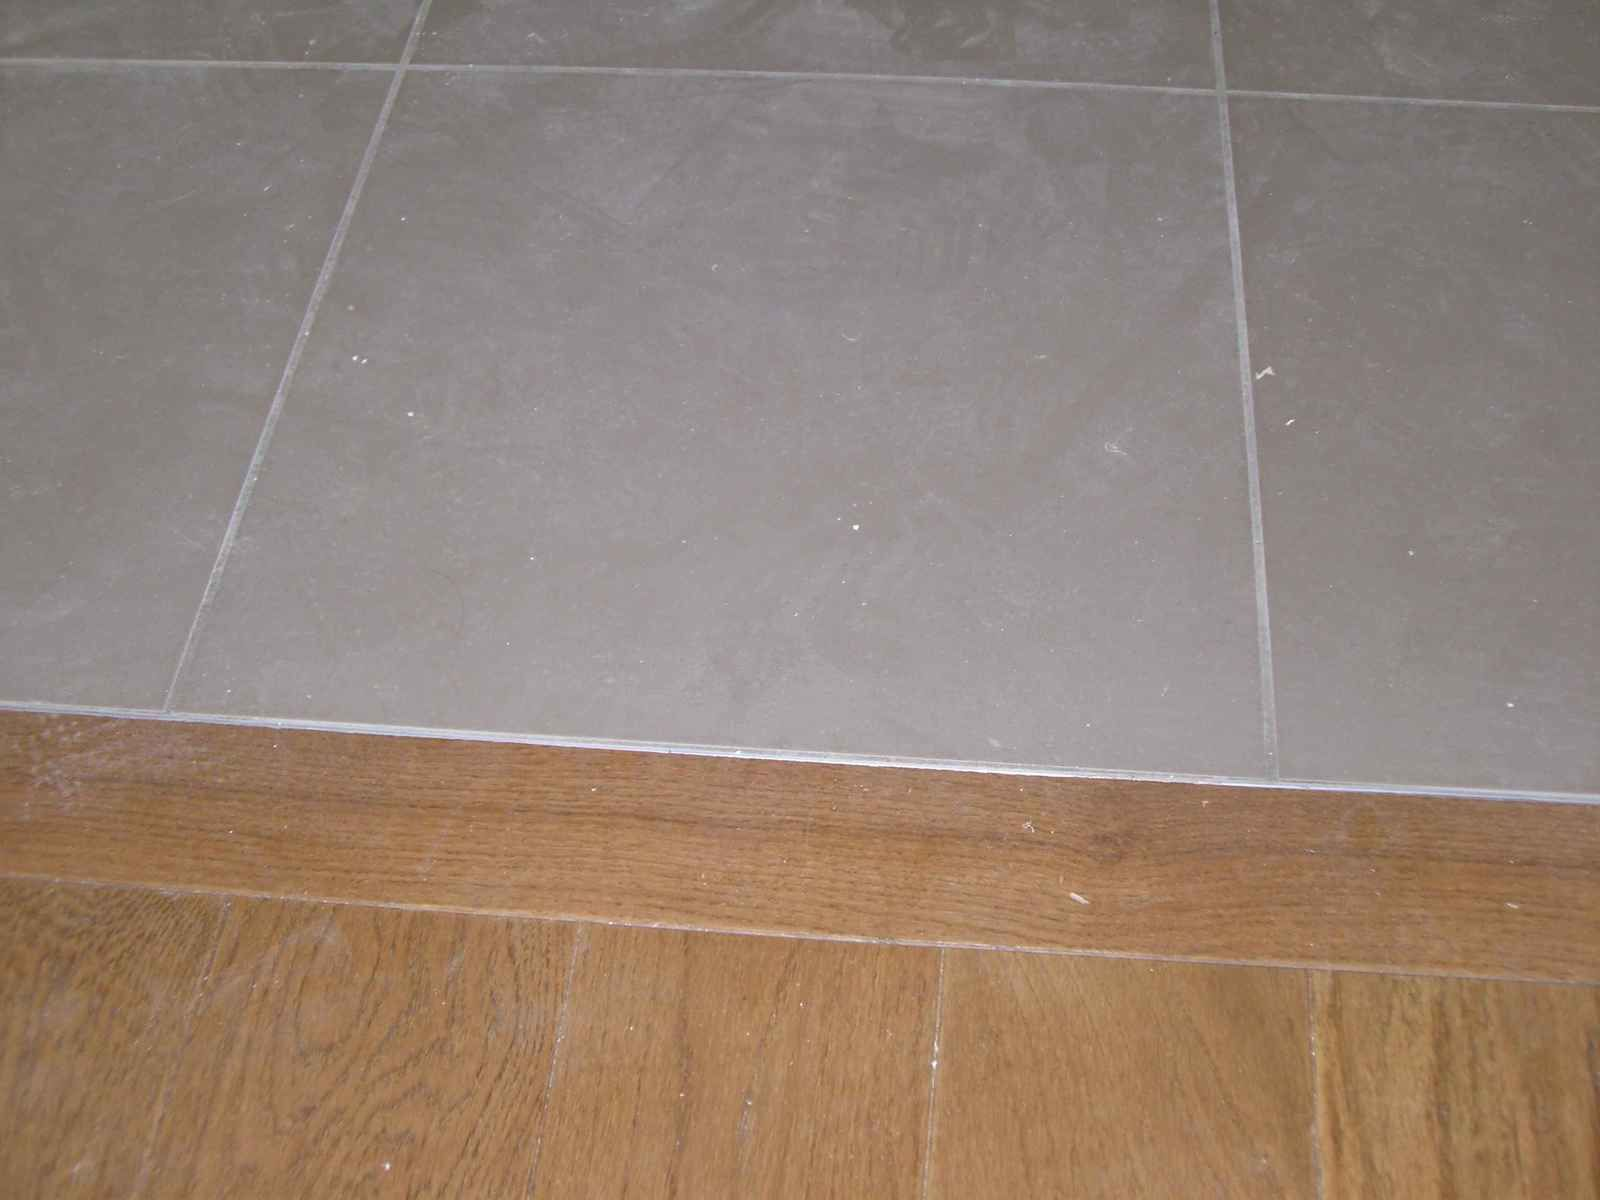 Parquet carrelage jonction parquet carrelage moderne for Carrelage parquet